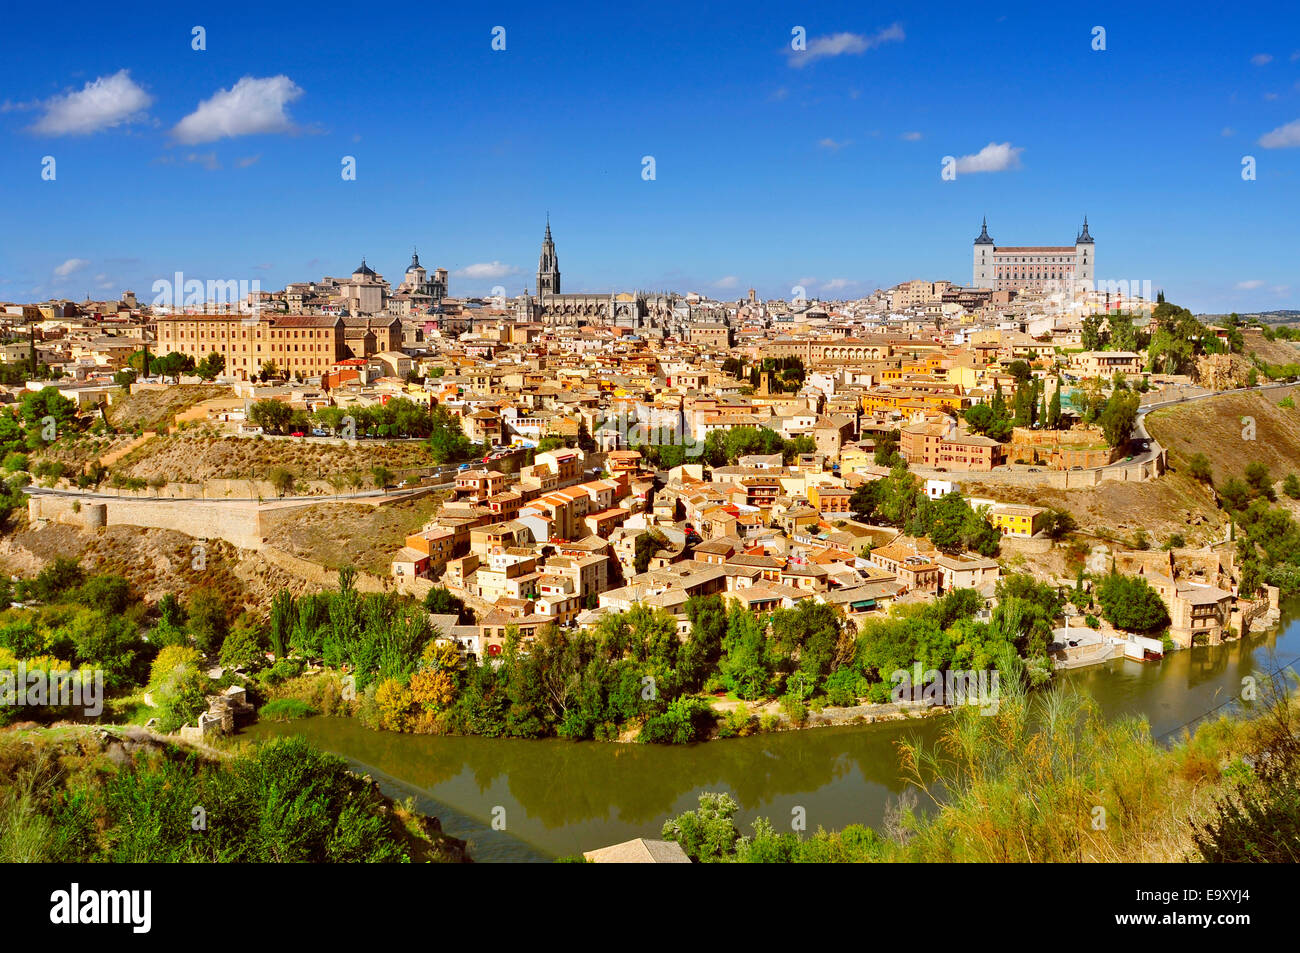 a panoramic view of Toledo, Spain, with the Tagus river in the foreground and the imposing Alcazar in the background Stock Photo